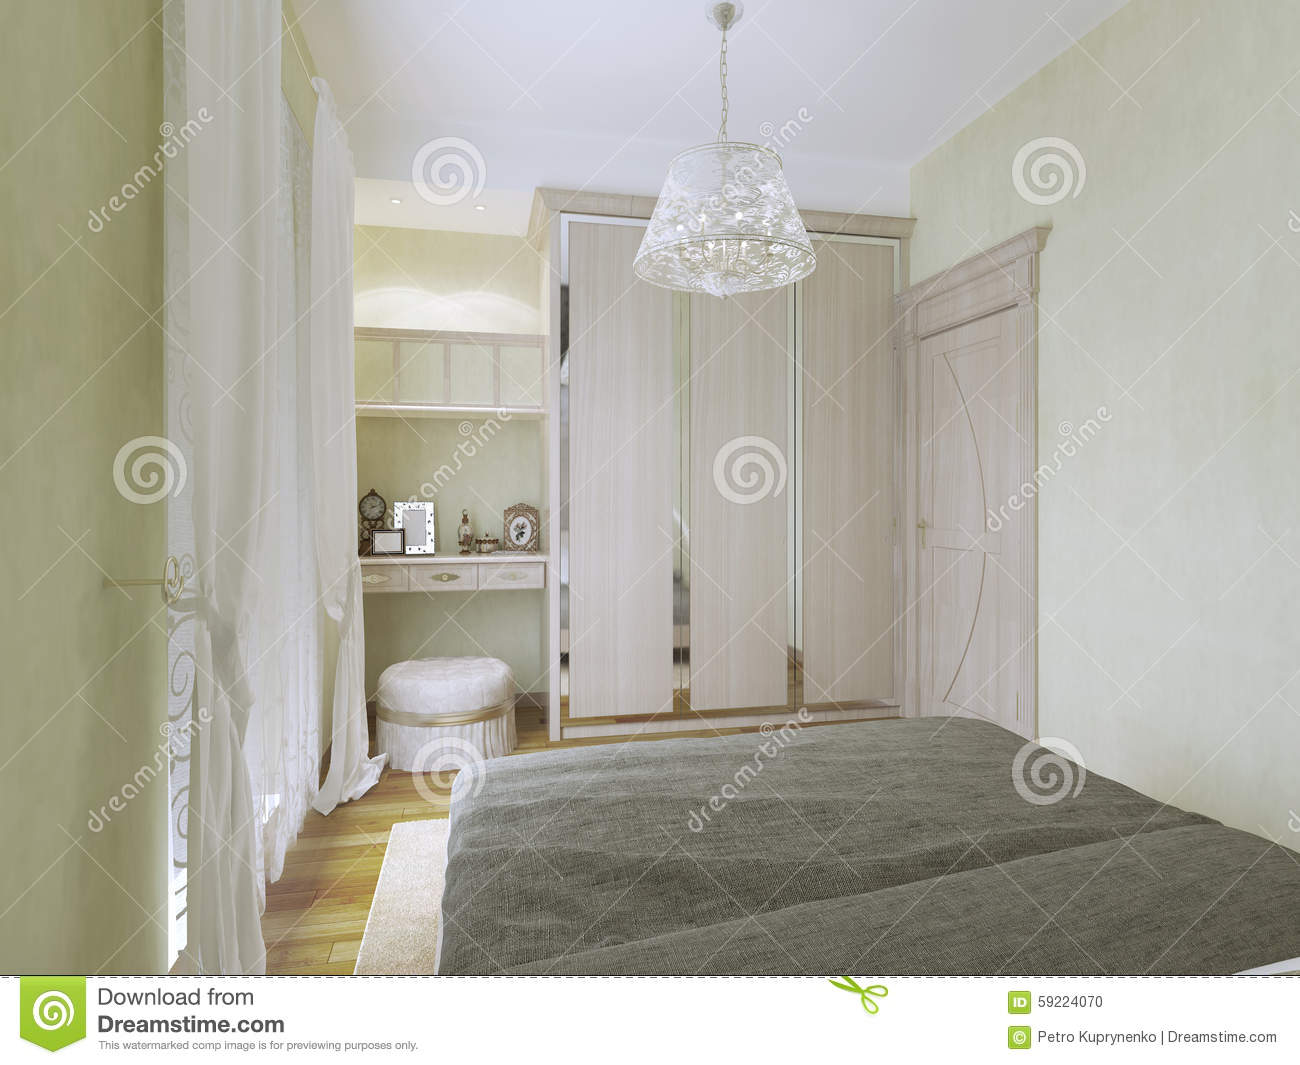 Modern Dressing Table Designs For Bedroom View Of Dressing Table And Wardrobe In Modern Bedroom Stock Photo